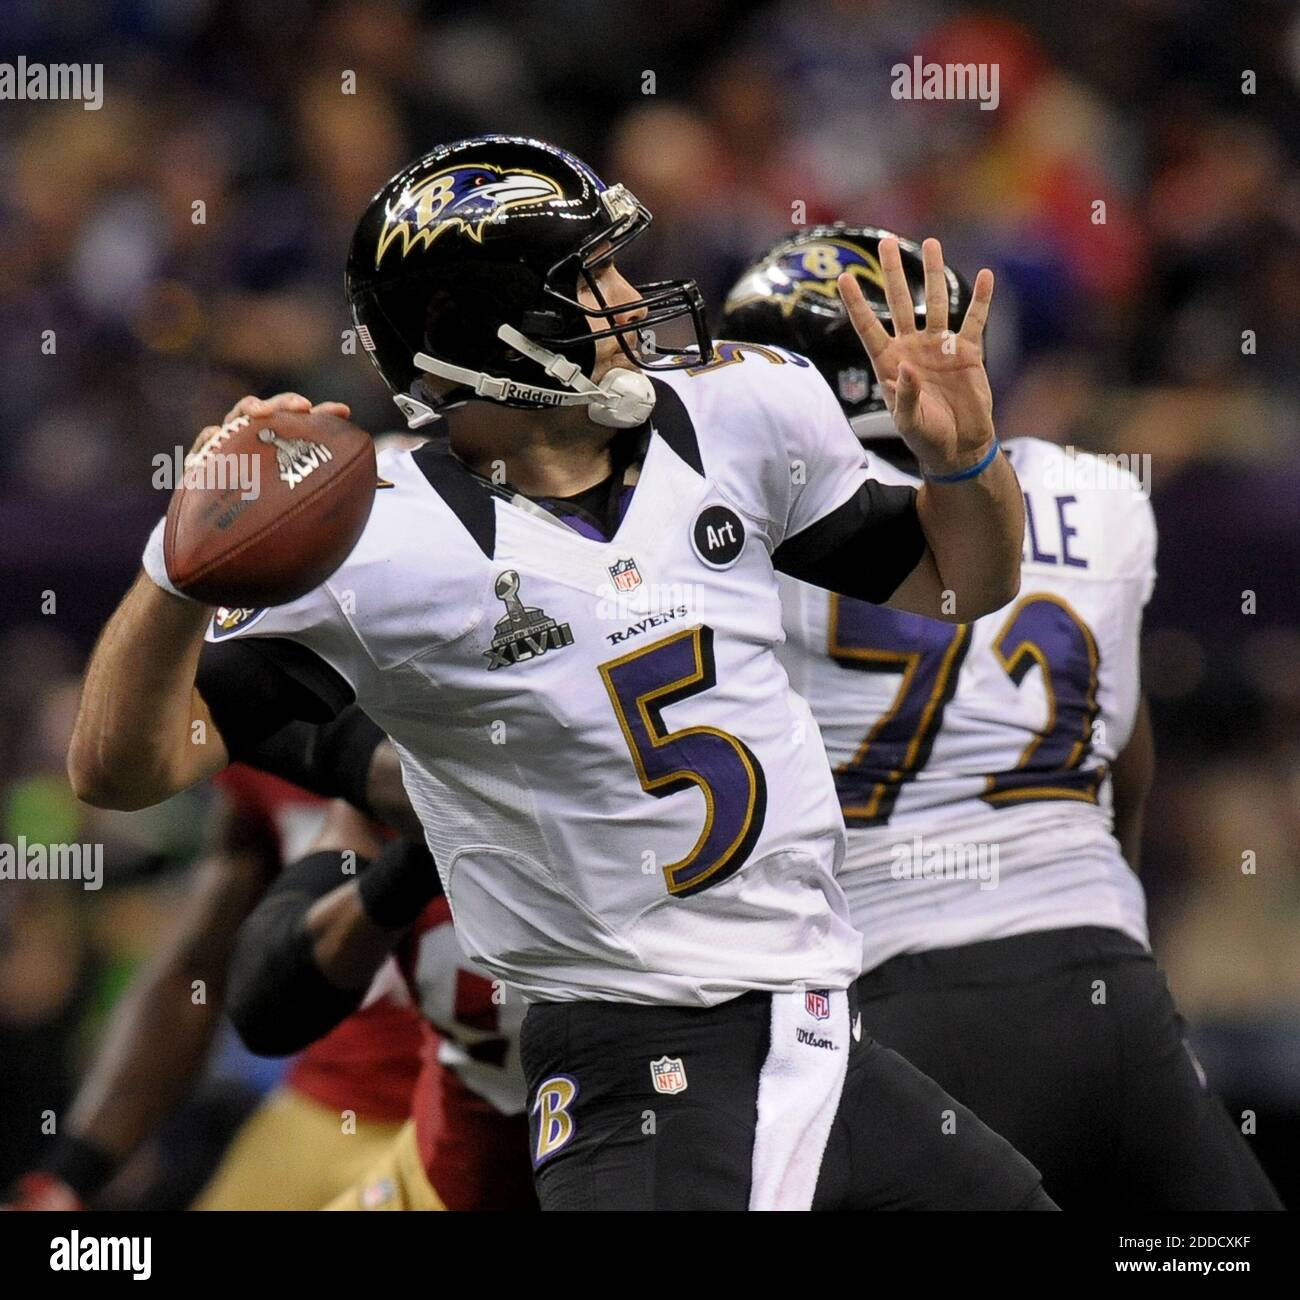 NO FILM, NO VIDEO, NO TV, NO DOCUMENTARY - Baltimore Ravens' Joe Flacco throws a long pass to Dennis Pitta during 2nd-quarter action in Super Bowl XLVII at the Mercedes-Benz Superdome in New Orleans, Louisiana, USA, Sunday, February 3, 2013. Photo by Gene Sweeney Jr./Baltimore Sun/MCT/ABACAPRESS.COM Stock Photo